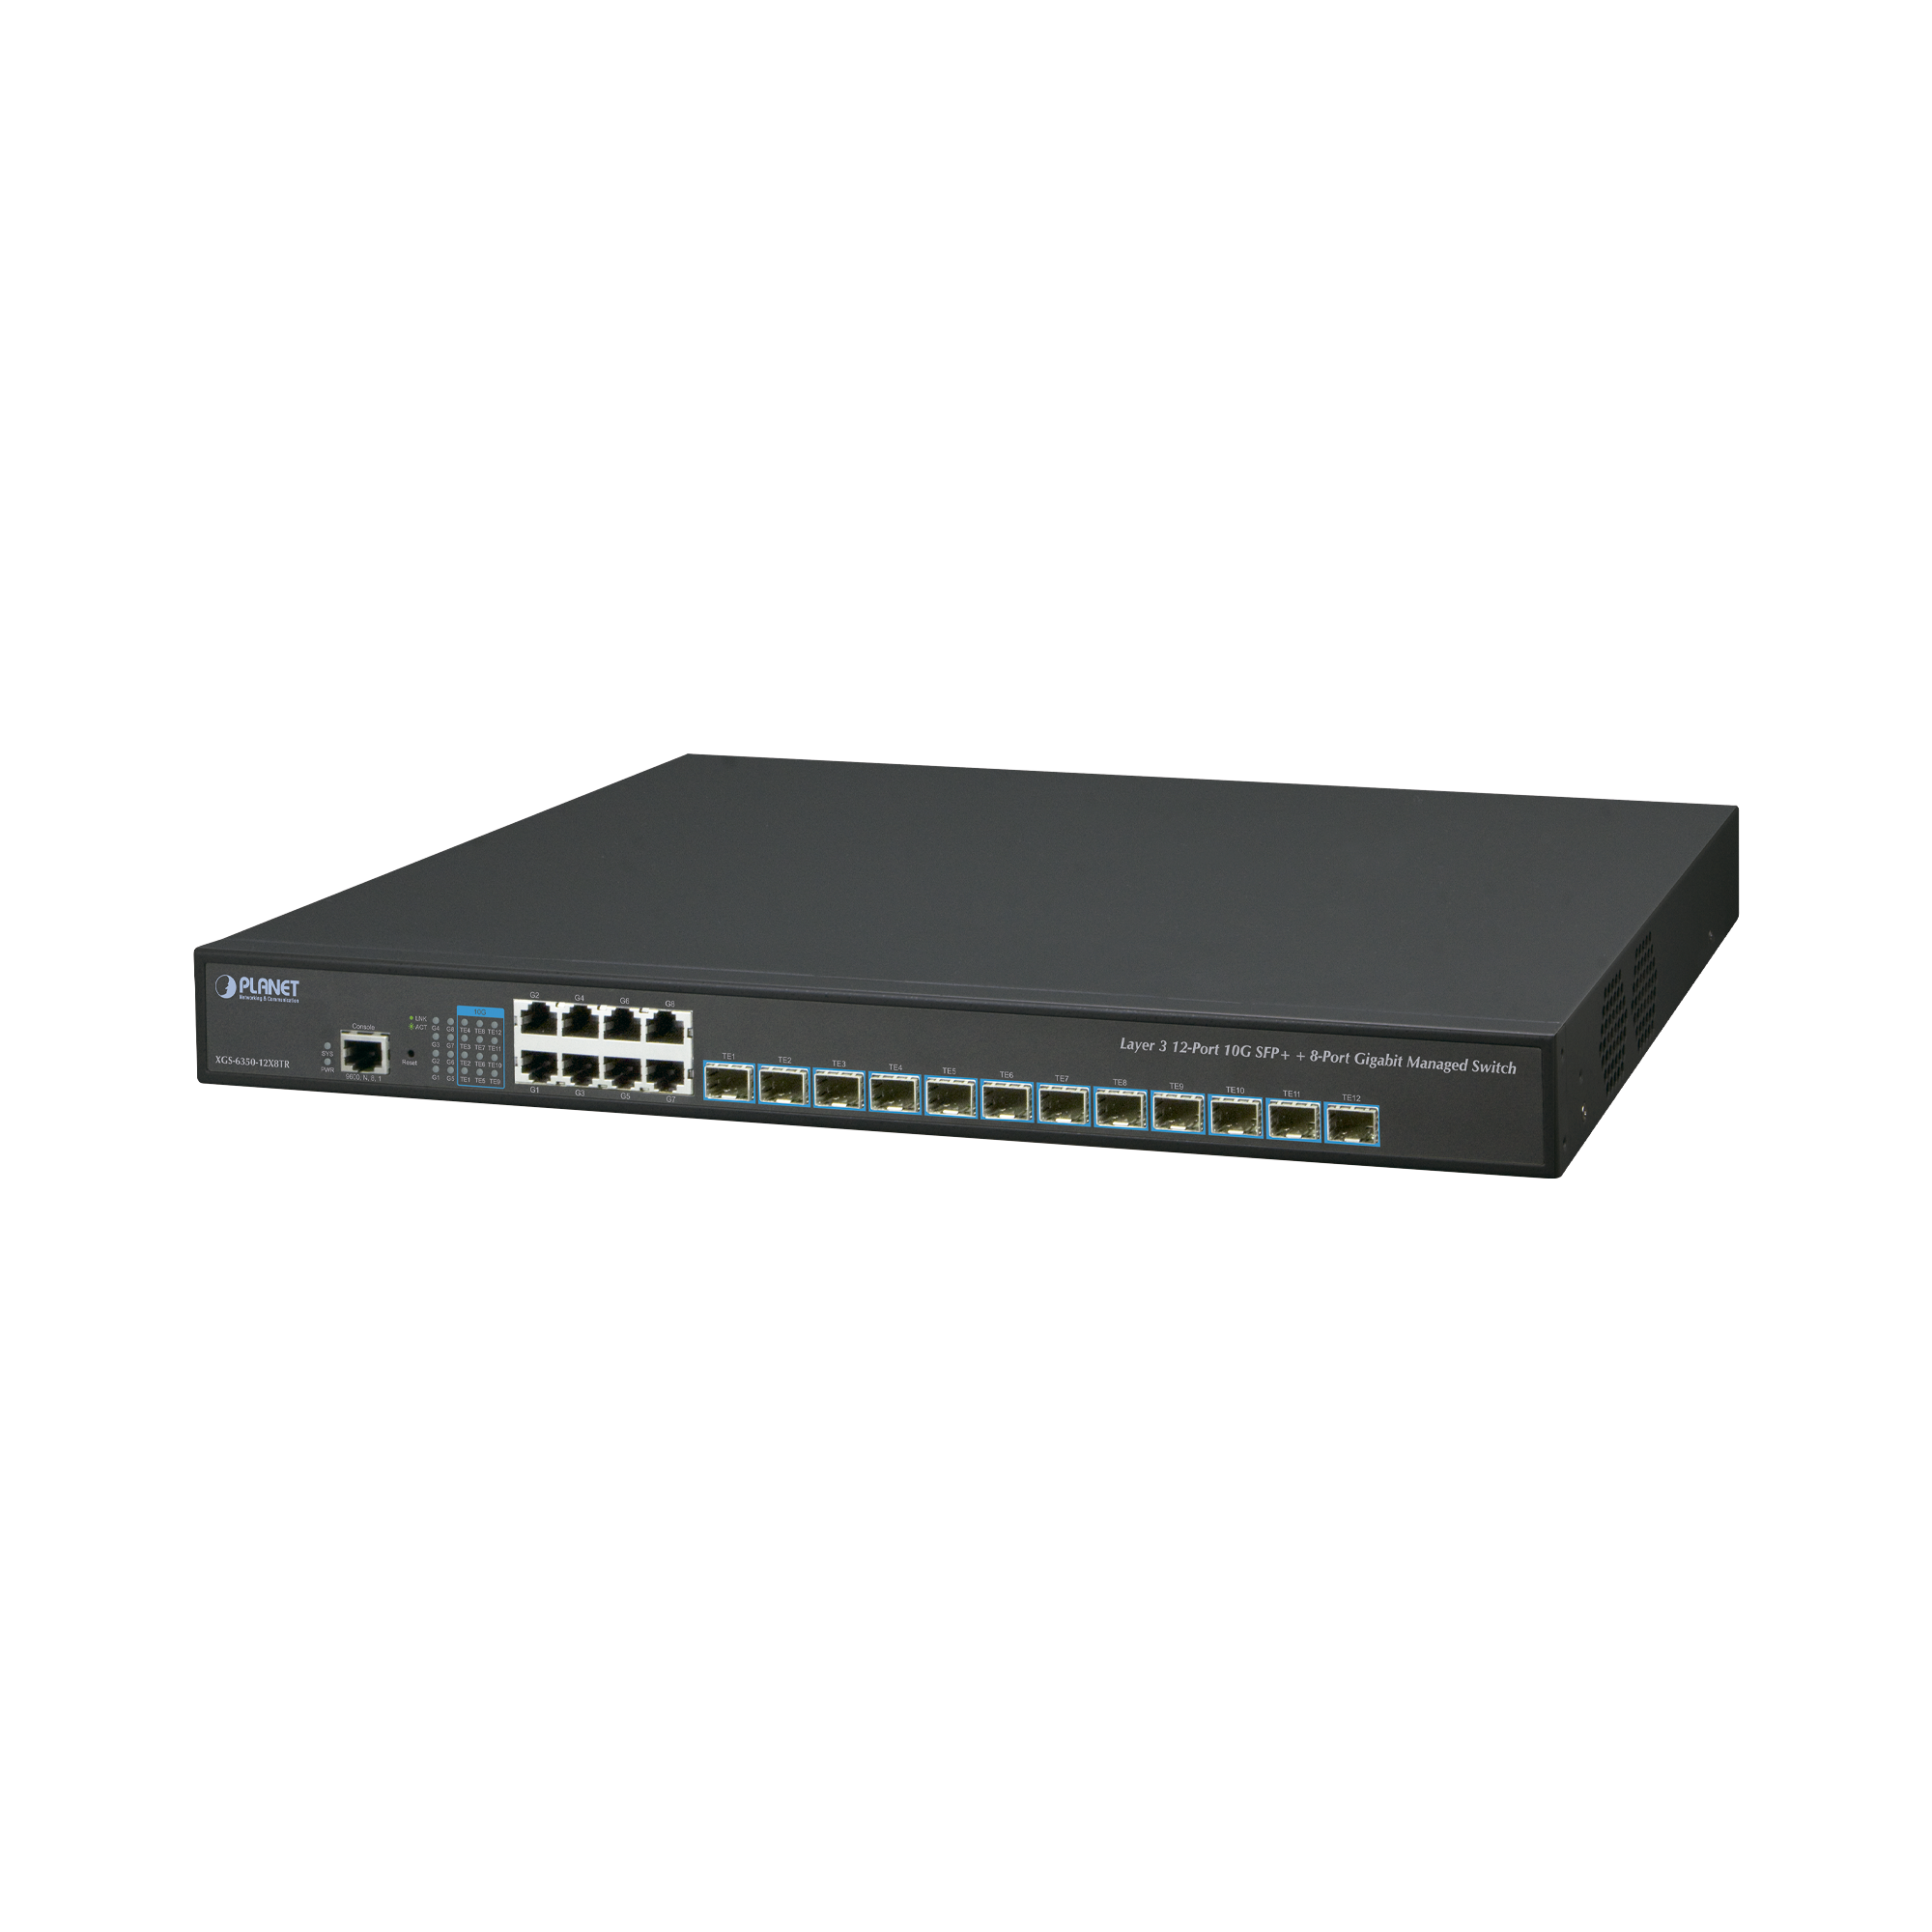 Switch Administrable Layer 3 12-Puertos 10G SFP+, 8-Puertos 10/100/1000T C/Fuente Redundante AC